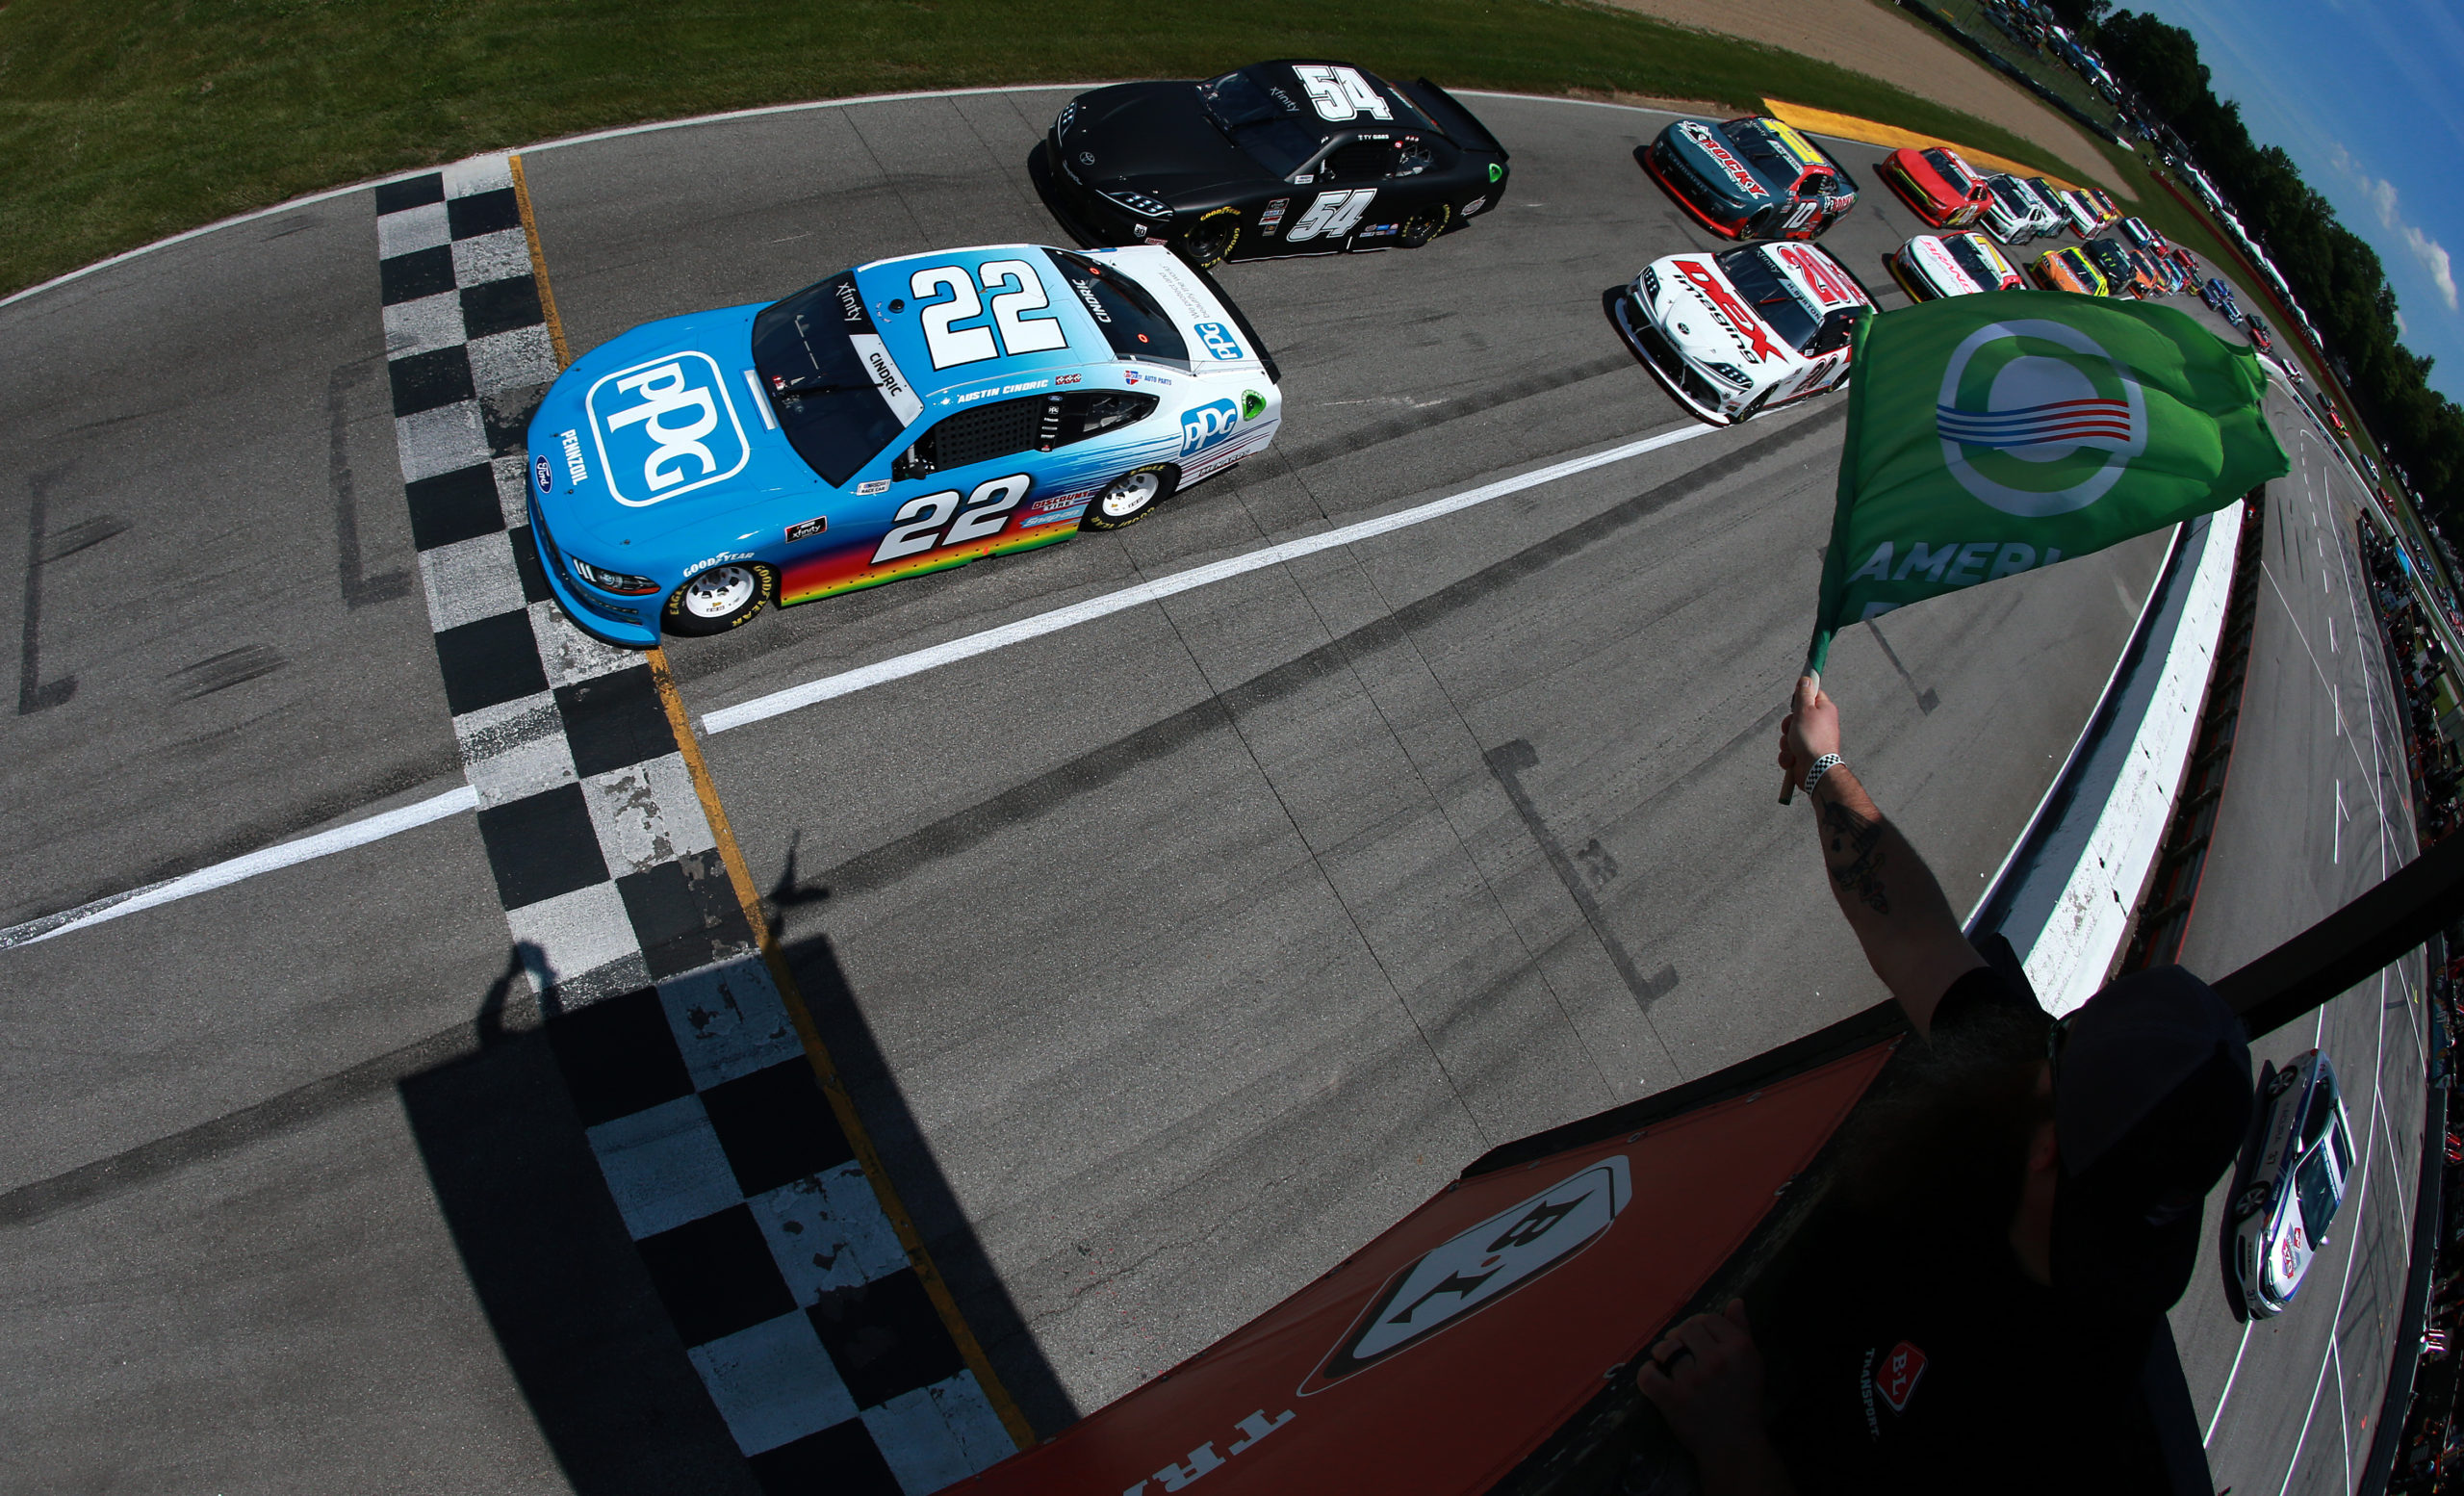 2022 Schedule Released for Xfinity and Truck Series